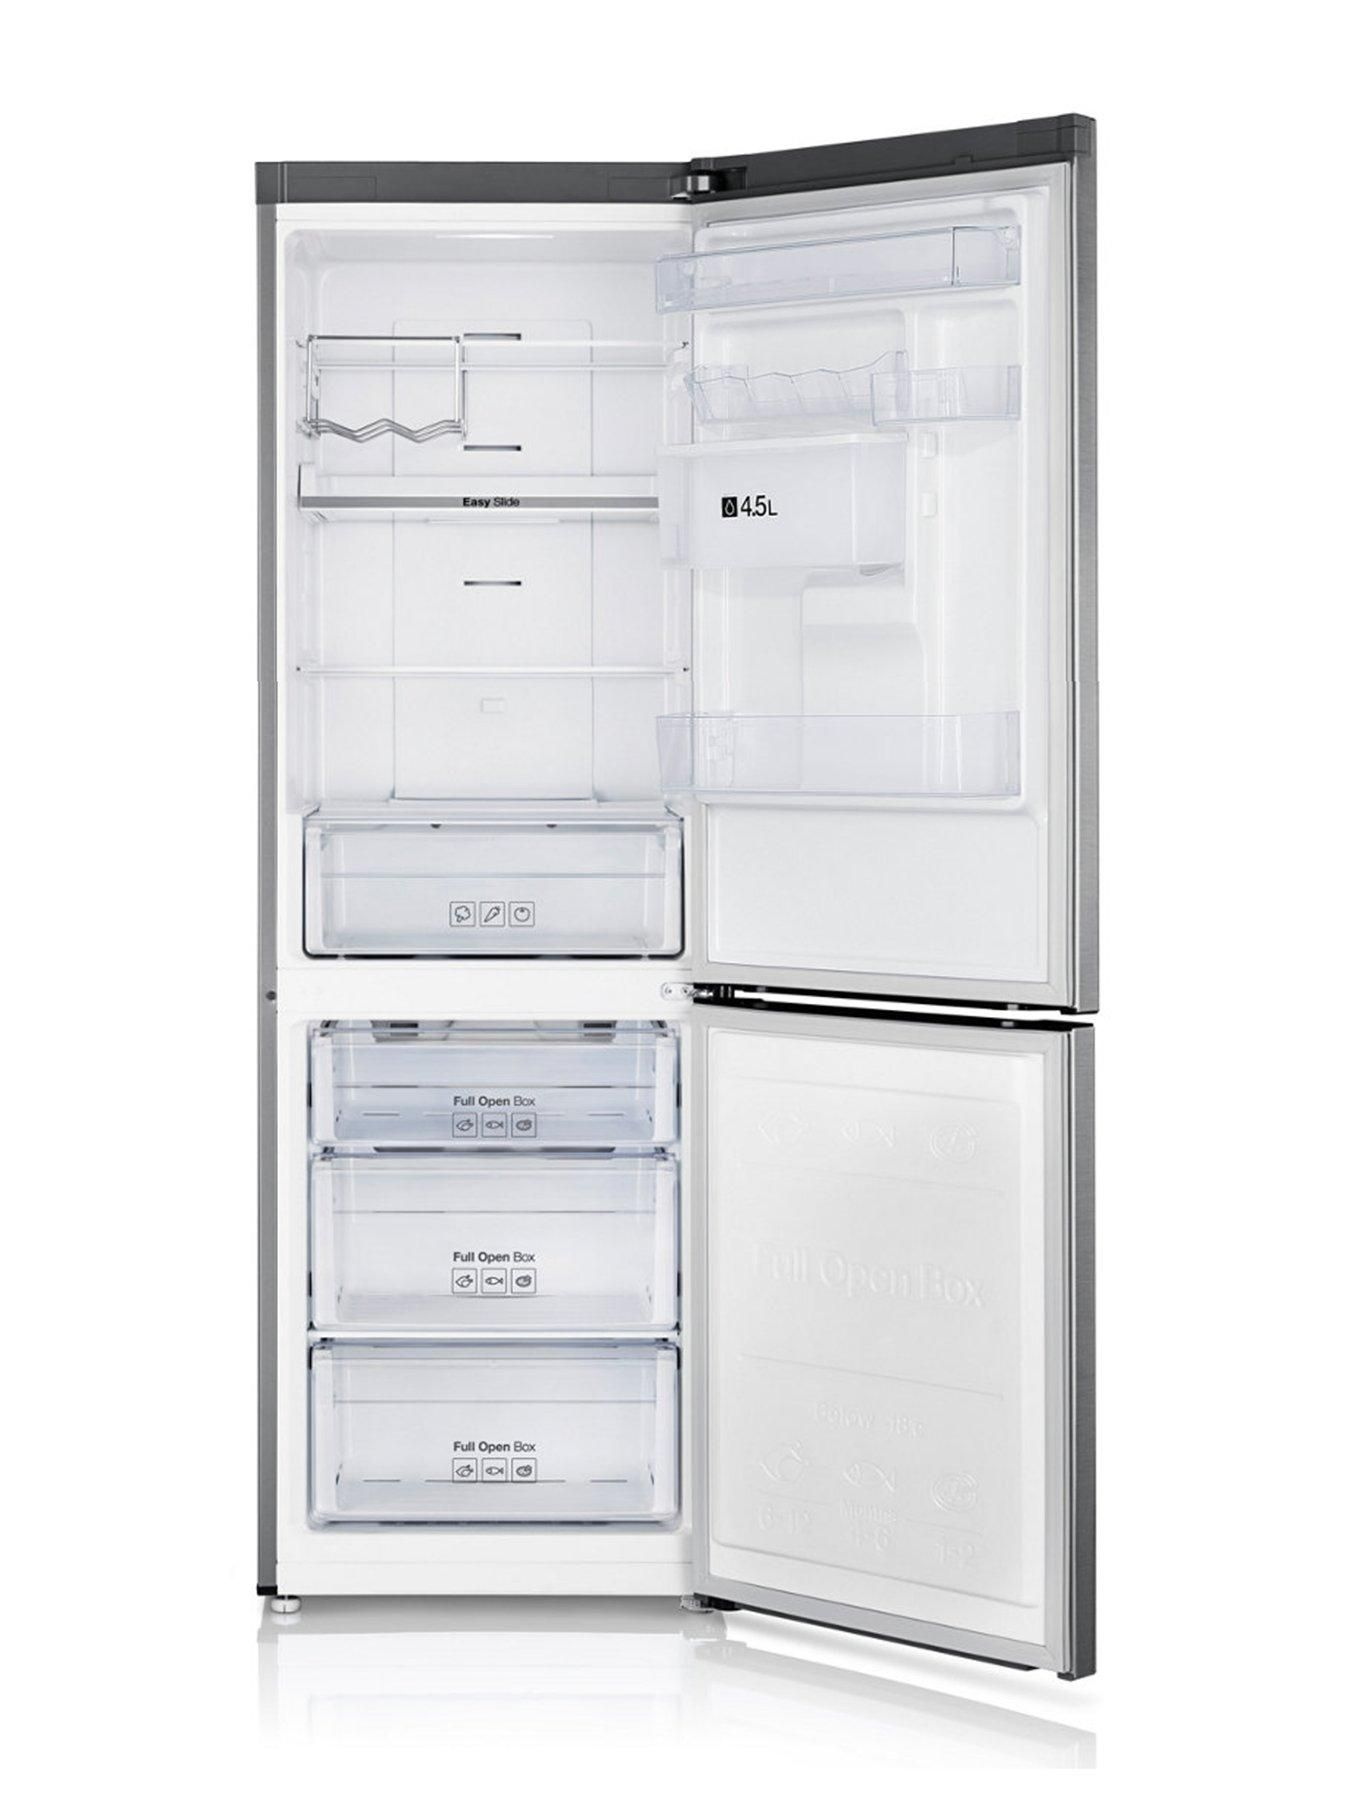 Samsung Rb31fdrndsa Eu 60cm Wide Frost Free Fridge Freezer With Digital Inverter Technology And 5 Year Samsung Parts And Labour New House In 2019 Samsung Fridge Freezer Samsung Fridge Fridge Shelves